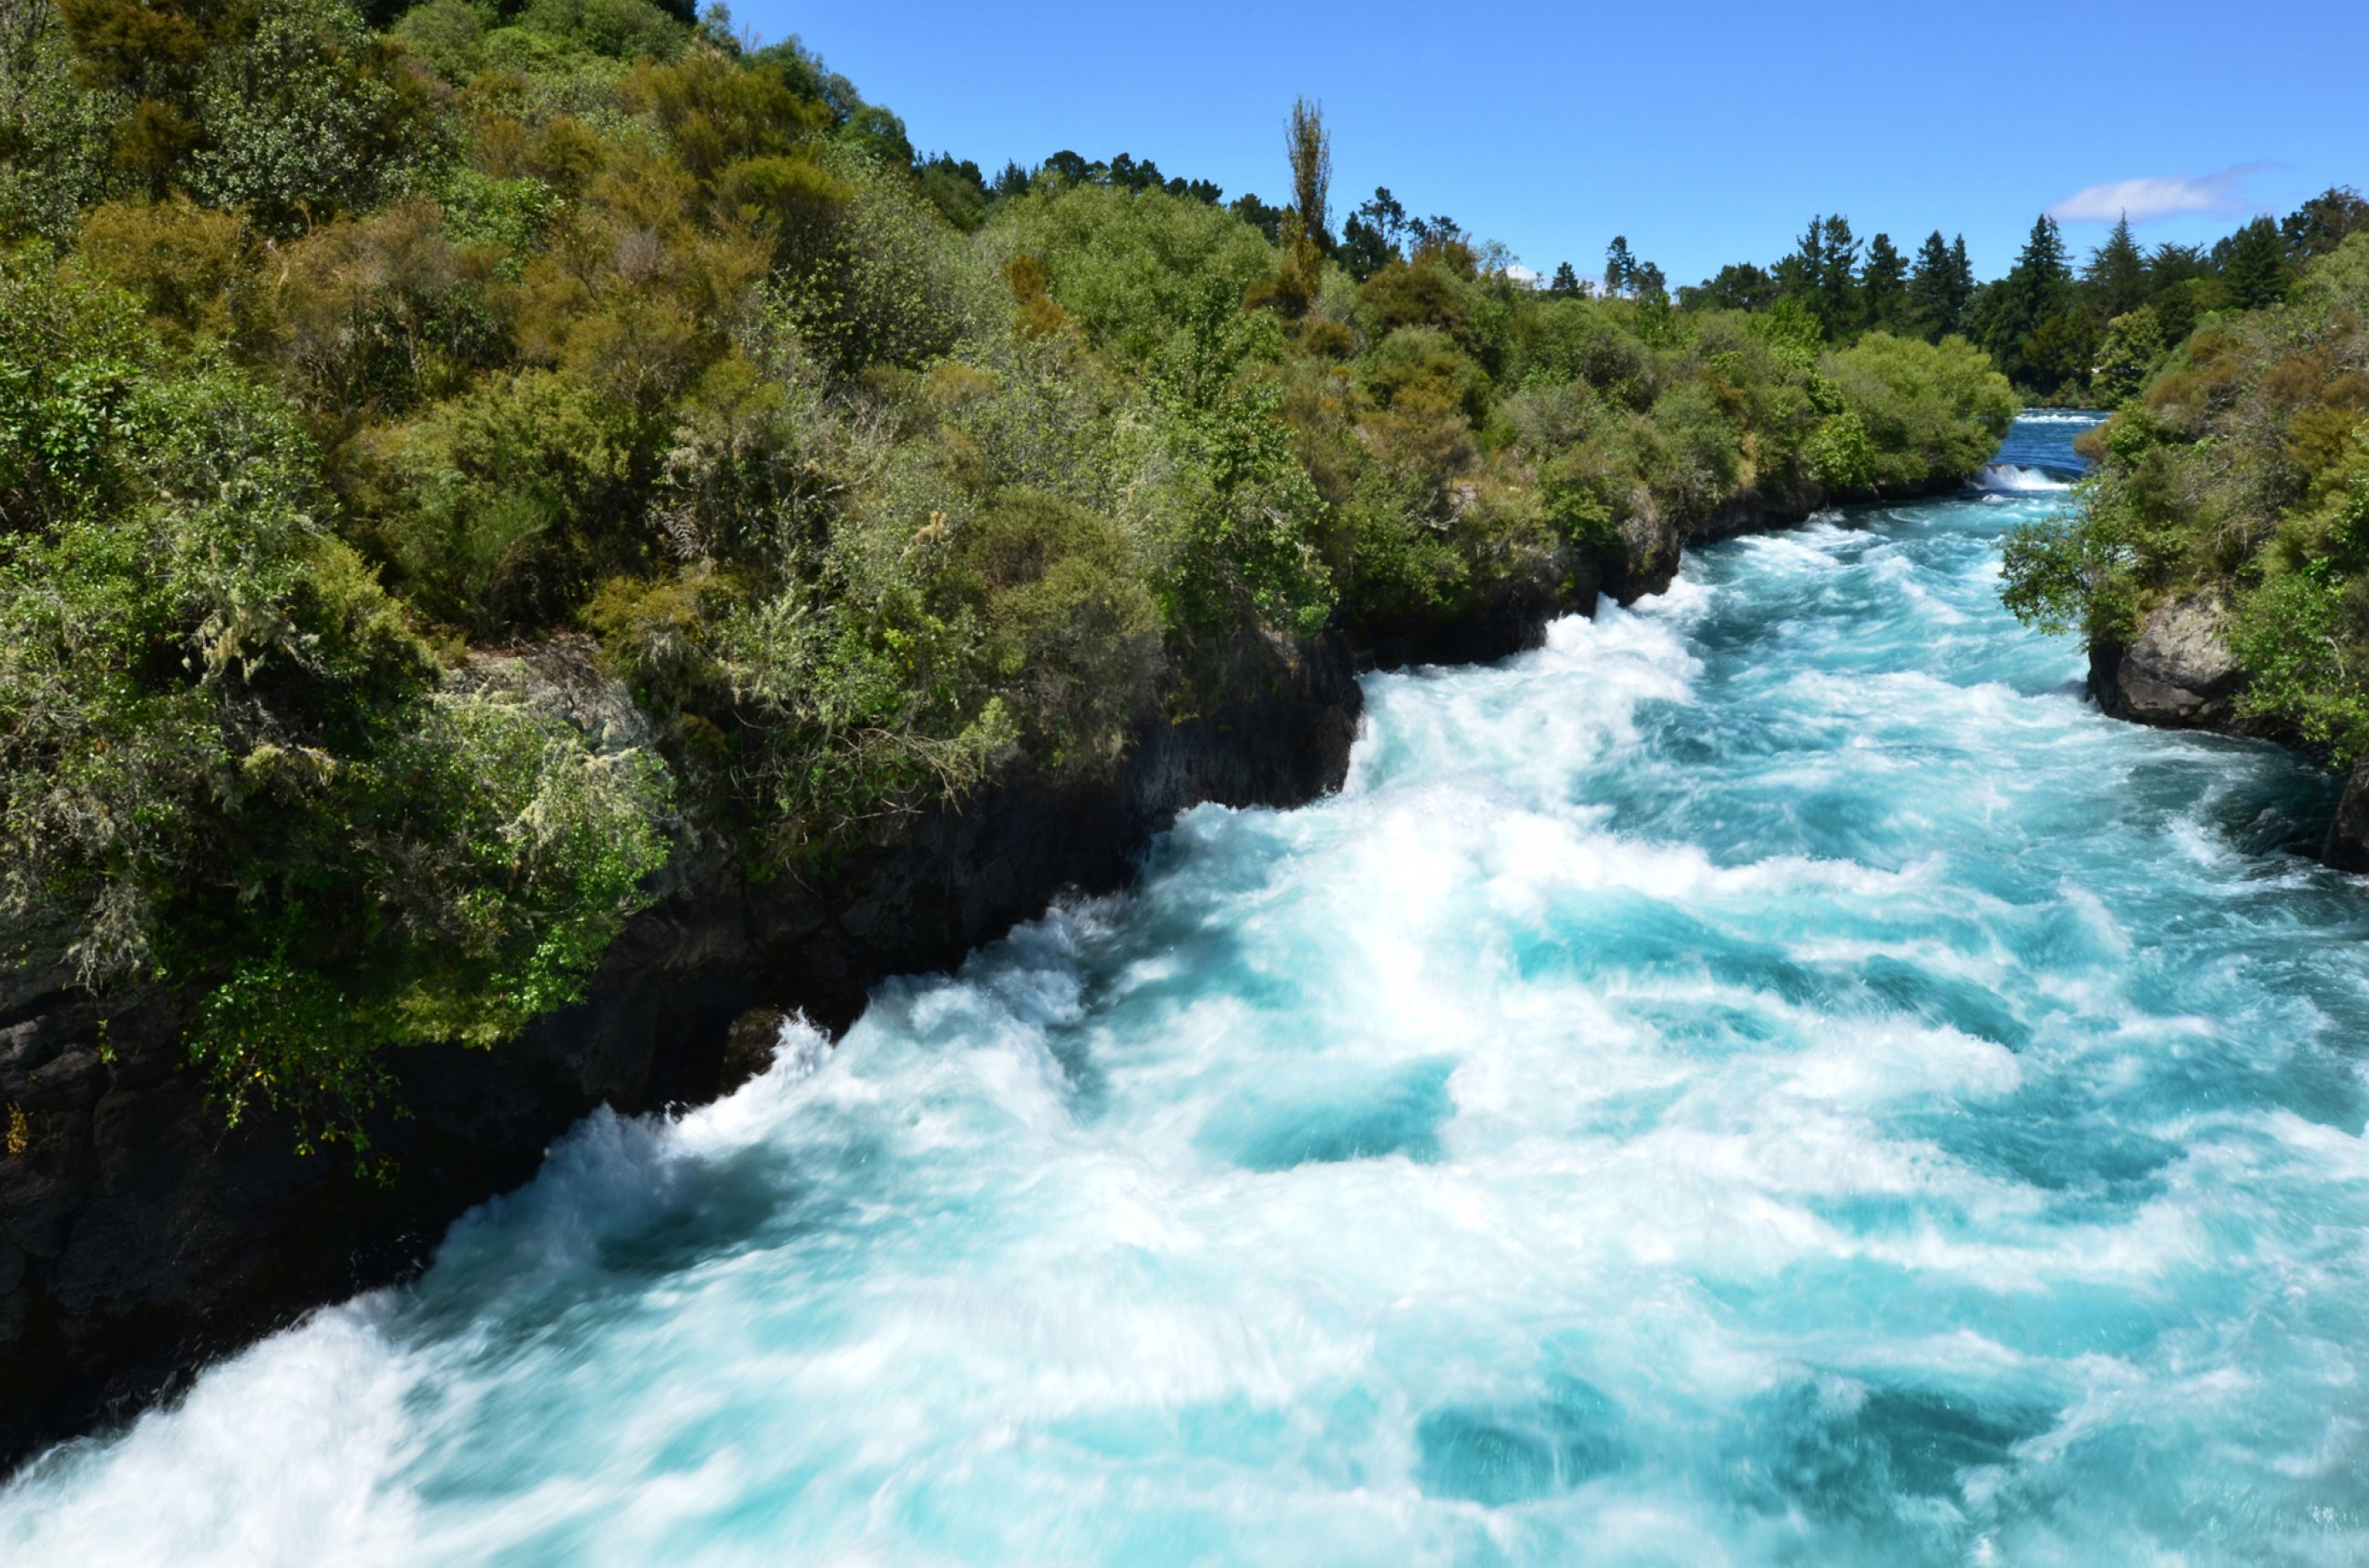 https://bubo.sk/uploads/galleries/5033/nz-huka-falls-dreamstime-xl-35679433-2-.jpg